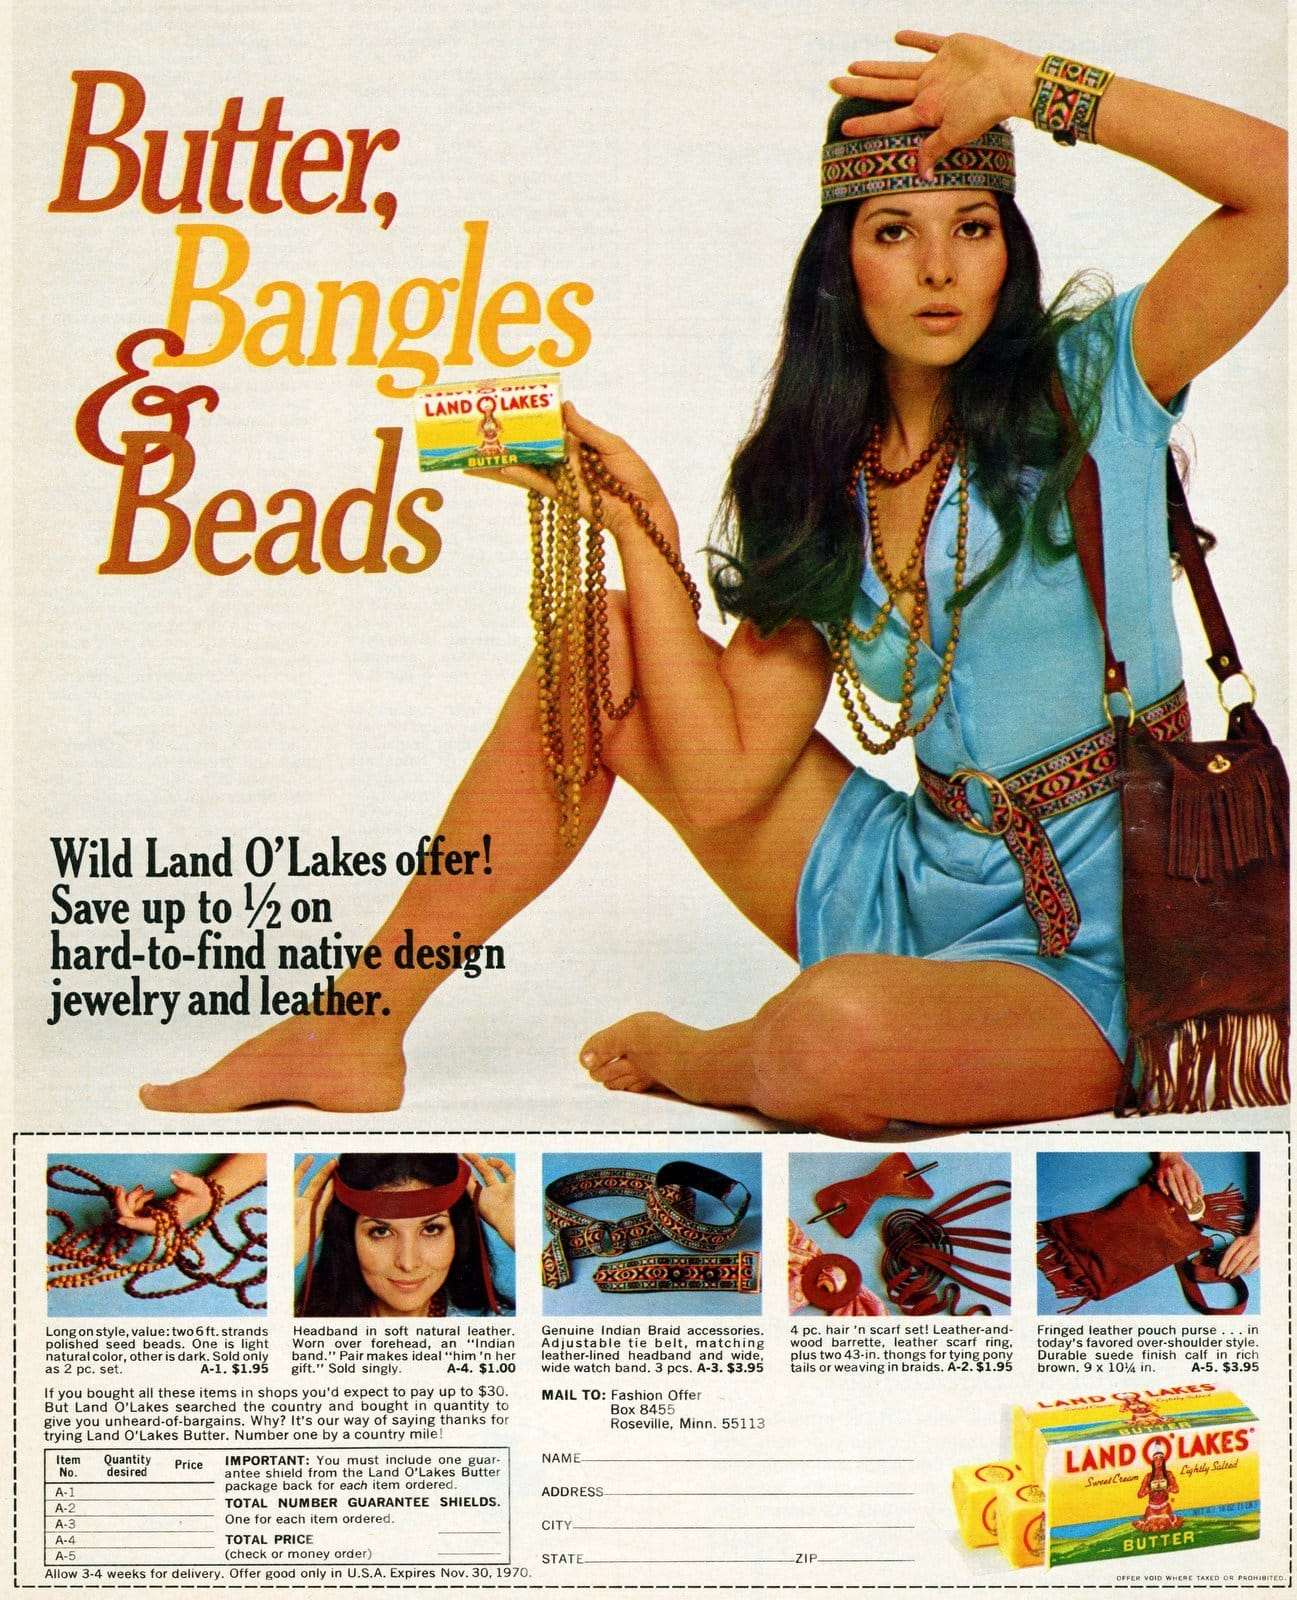 Native American jewelry offer - Land o Lakes 1970 fashion